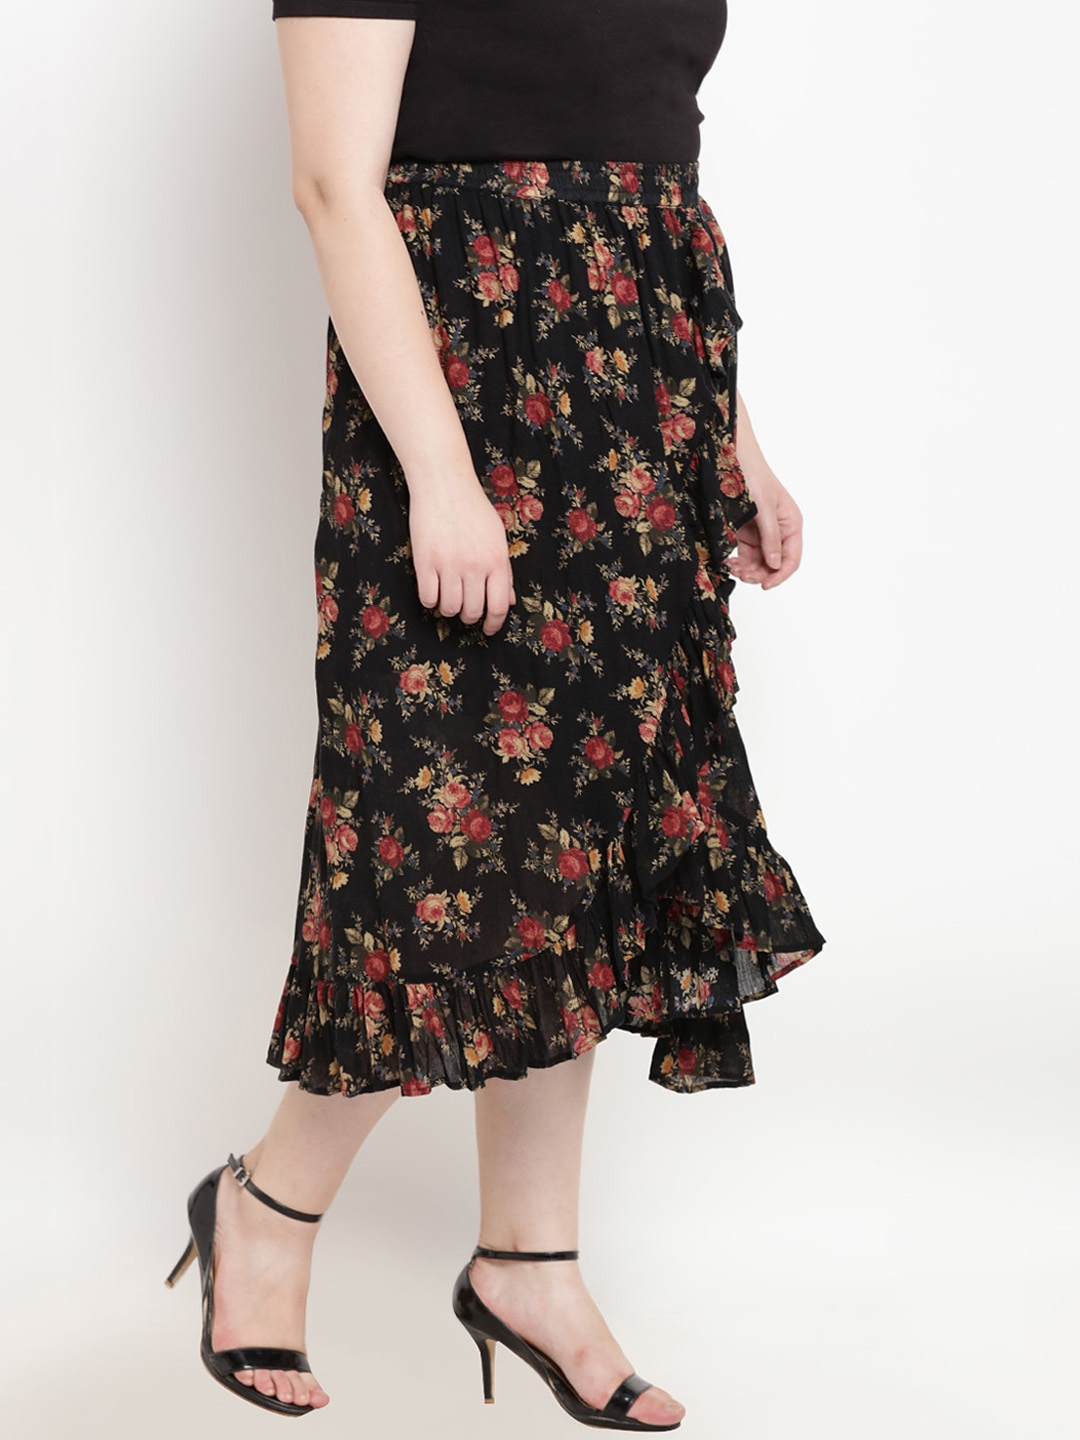 b98ba7e836 Buy The Pink Moon Women Black Printed A Line Skirt - Skirts for ...